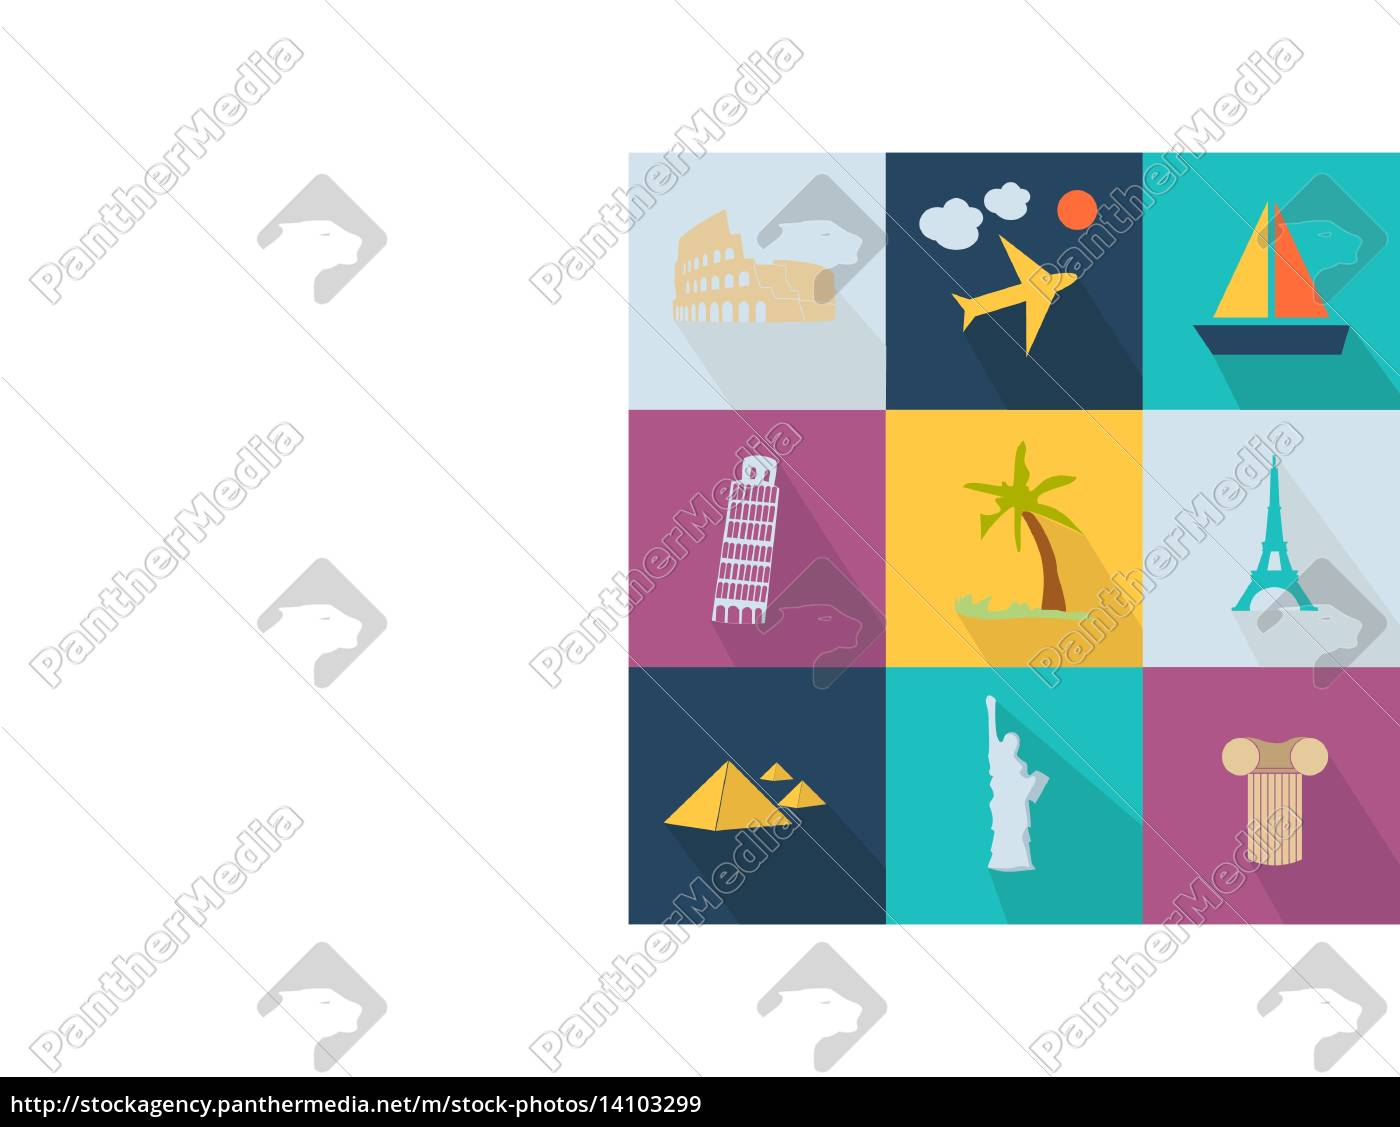 business, icon, -, style, web, 2.0 - 14103299